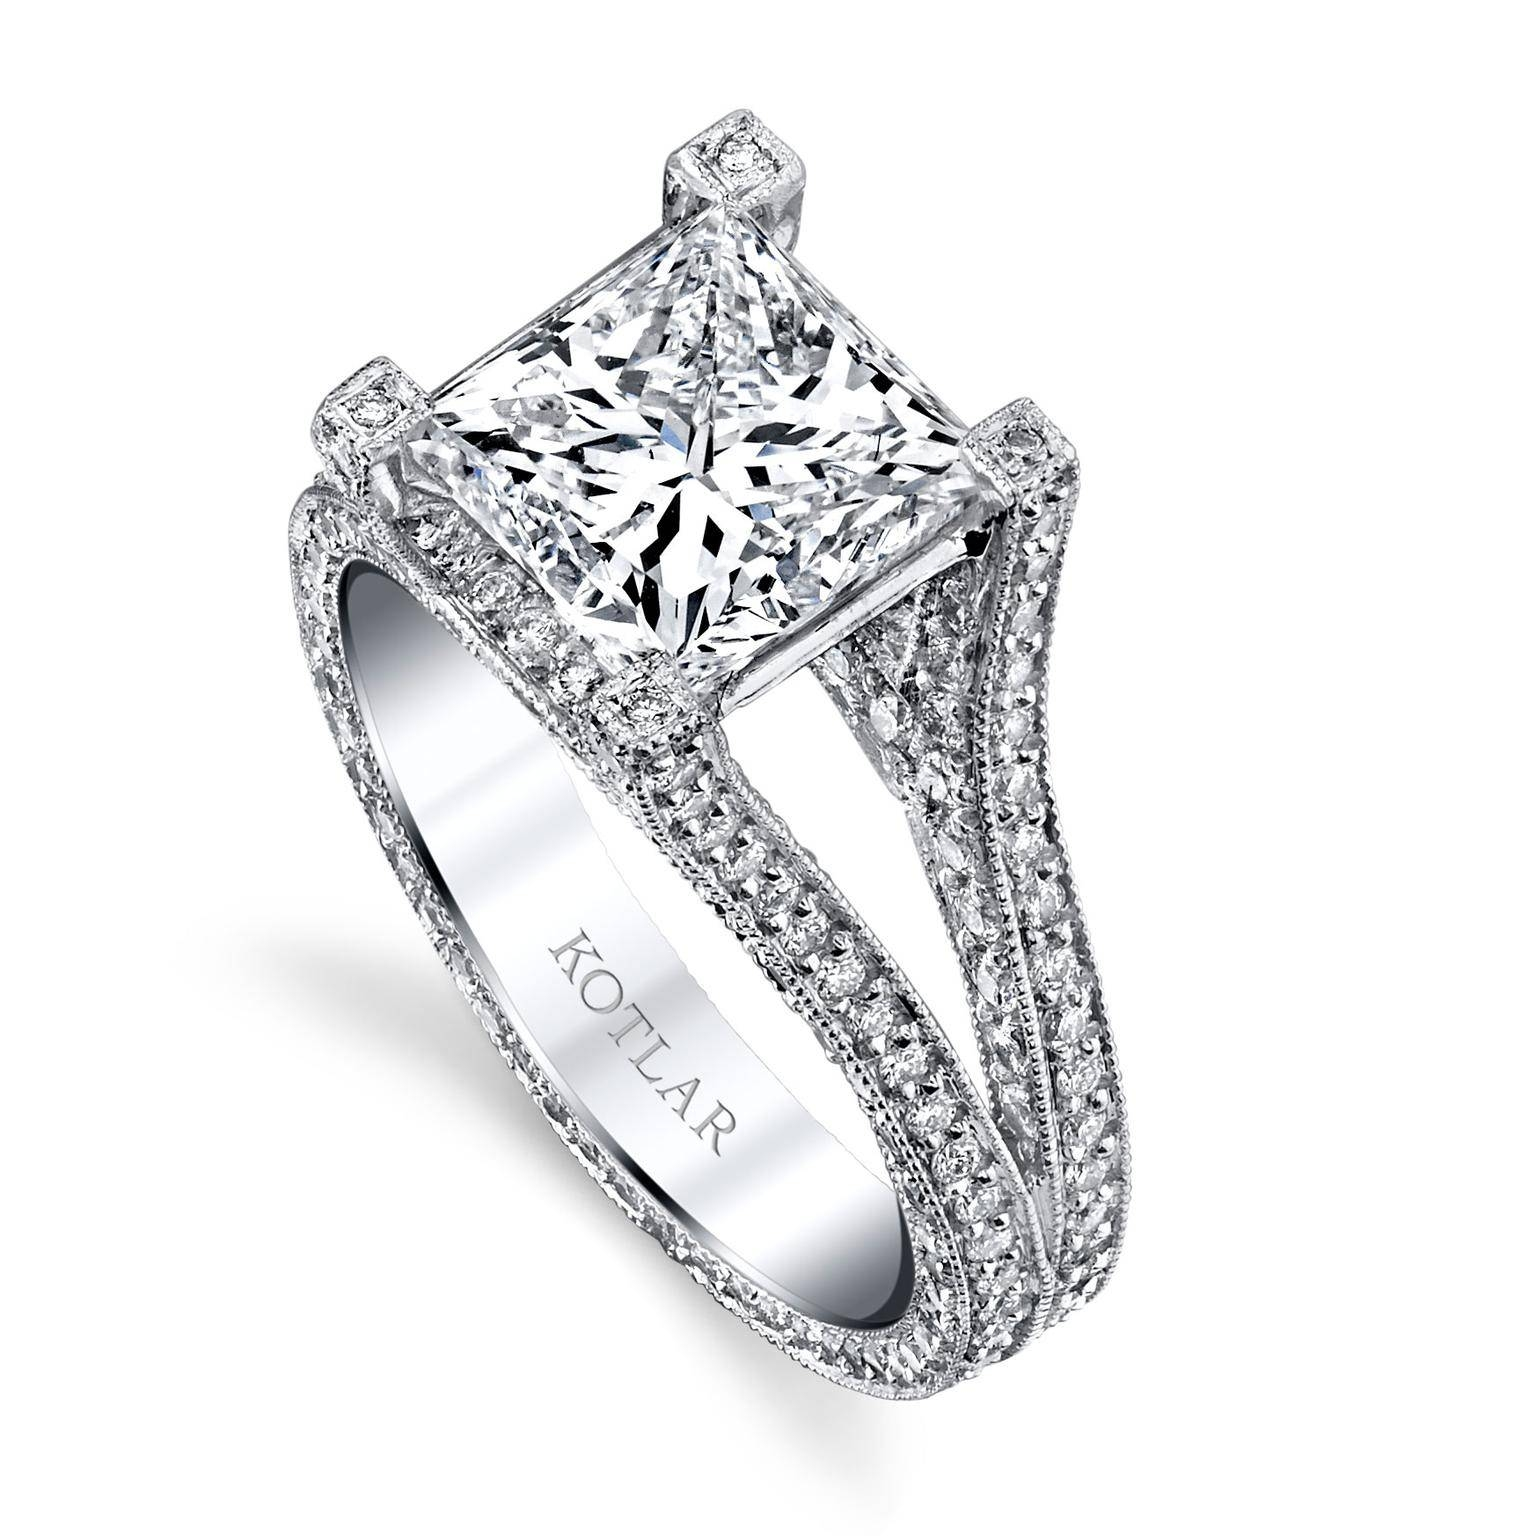 The Romantic Appeal Of Princess Cut Engagement Rings | The Intended For Princess Shaped Engagement Rings (Gallery 11 of 15)